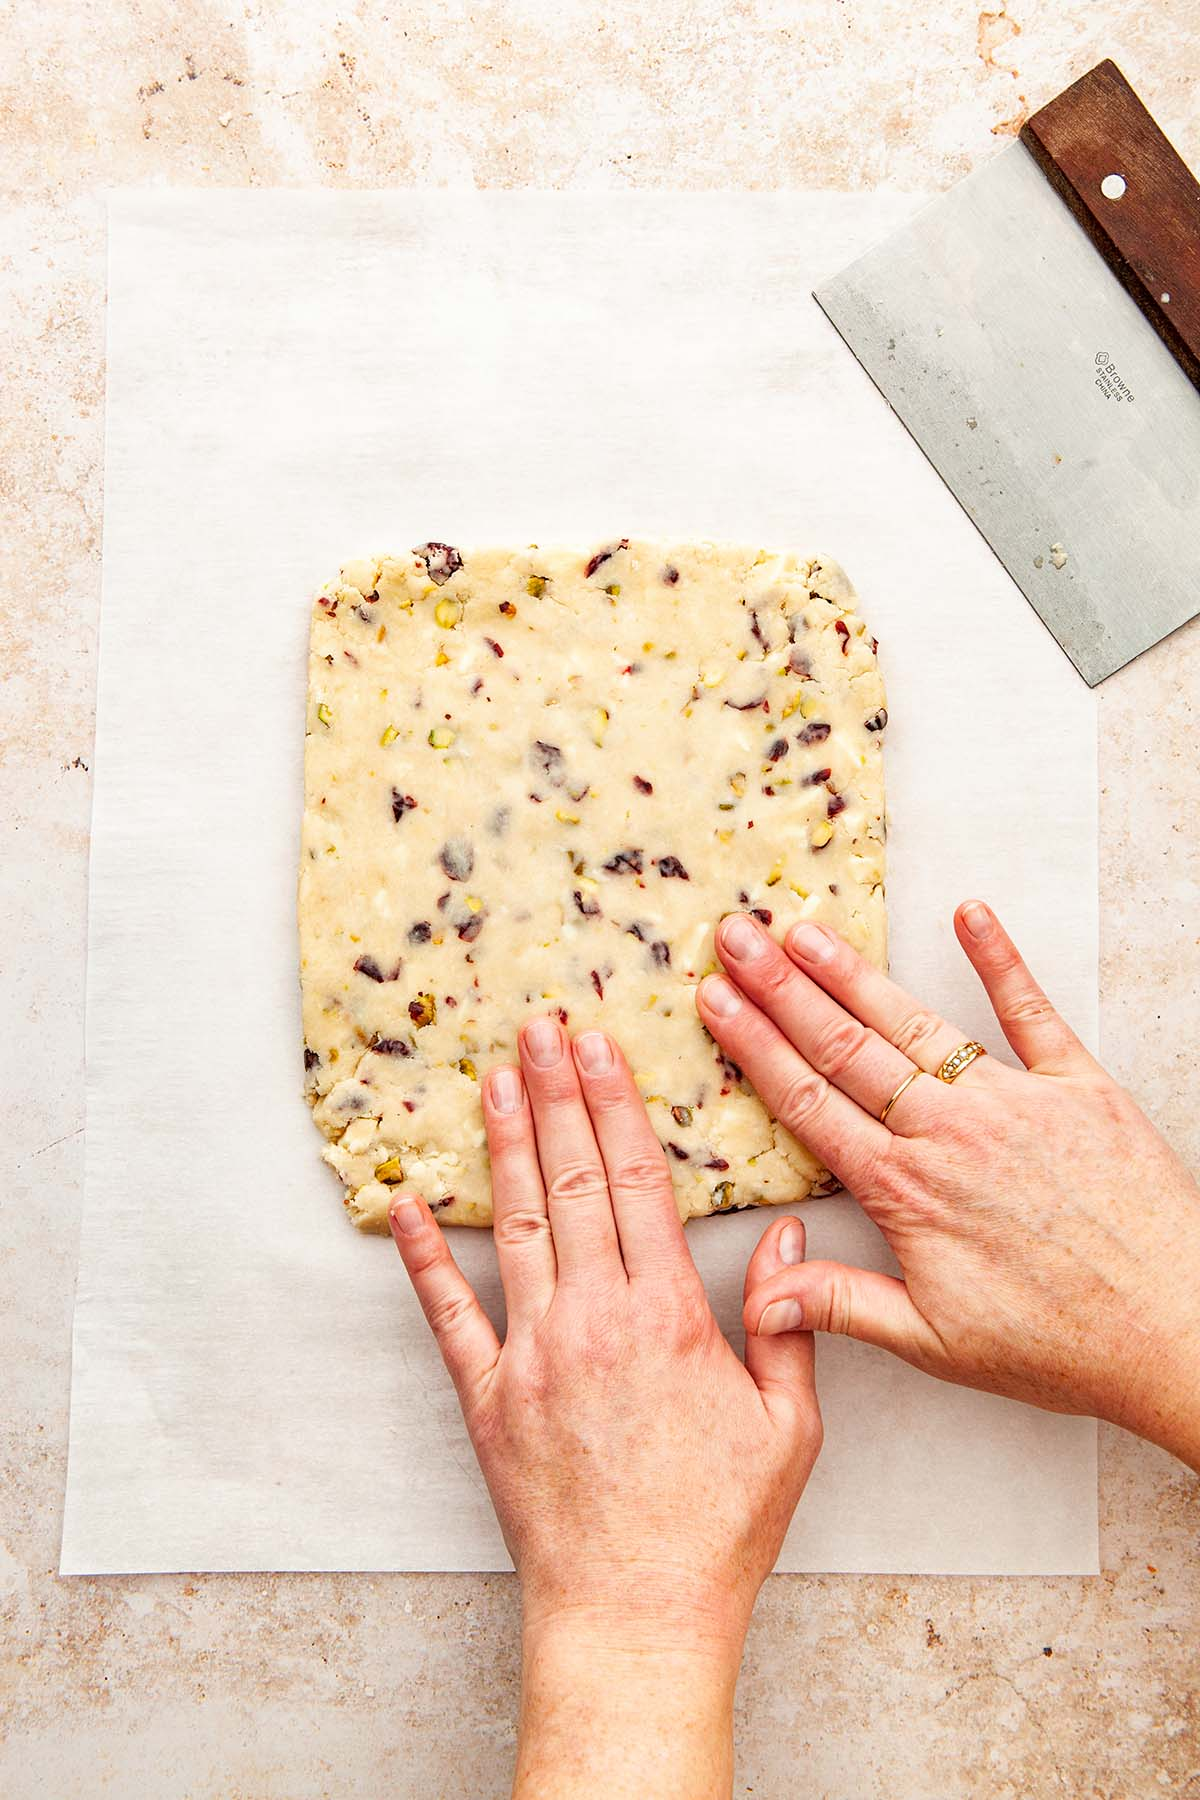 A hand pressing a slab of cookie dough into place before baking.